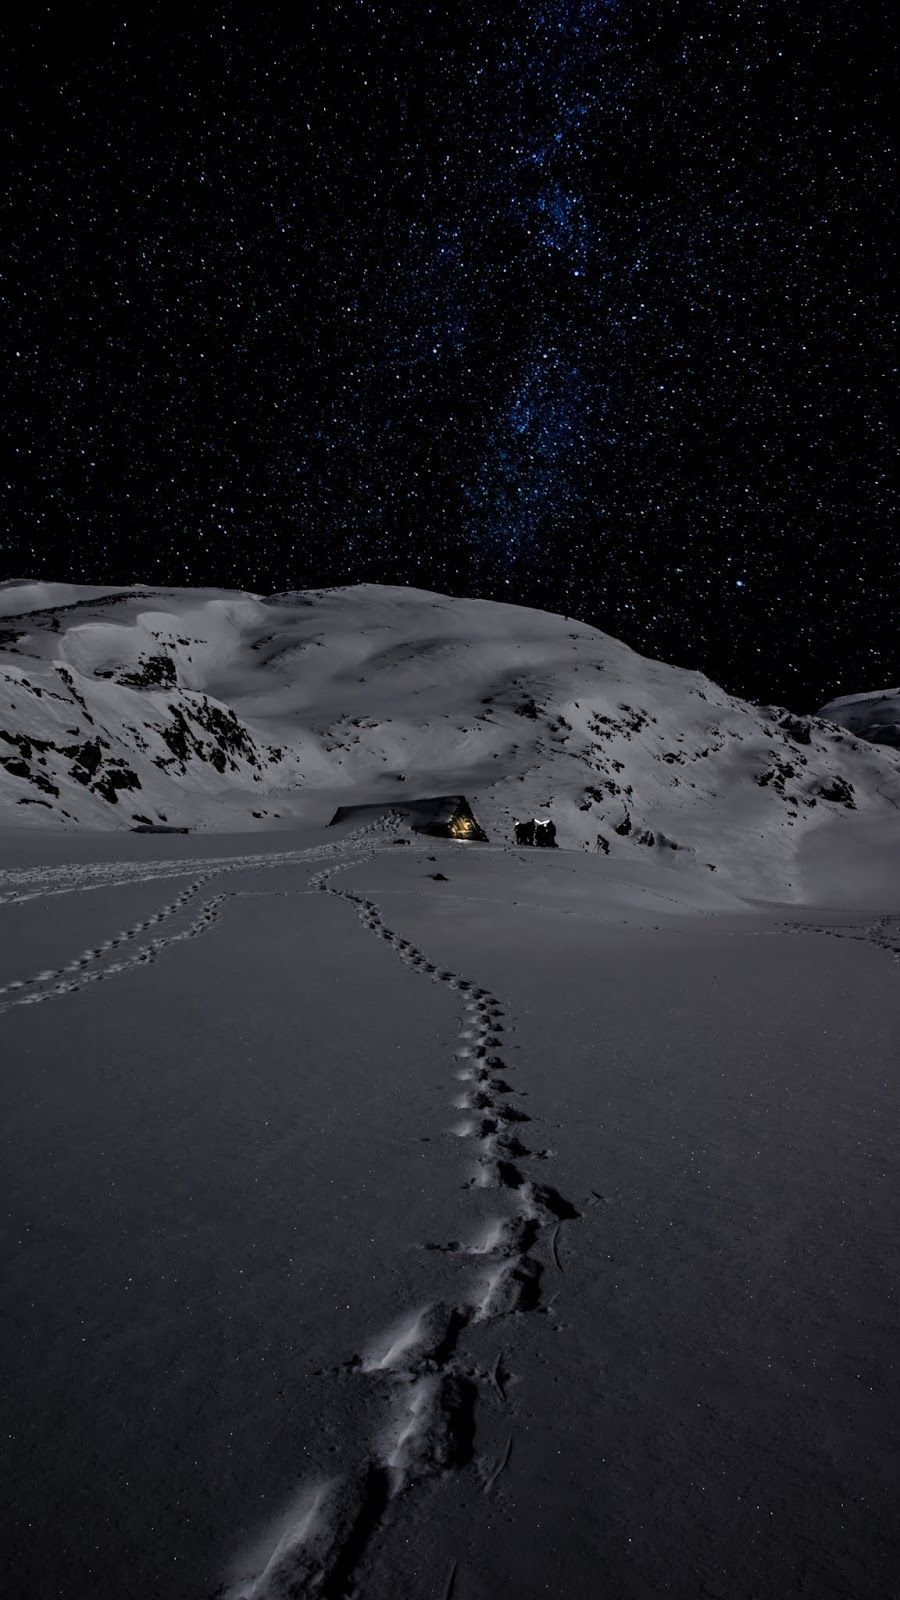 Nature Night Snow Mountains Id 46398 Hd Wallpapers Iphone Wallpaper Winter Winter Wallpaper Snow Wallpaper Iphone